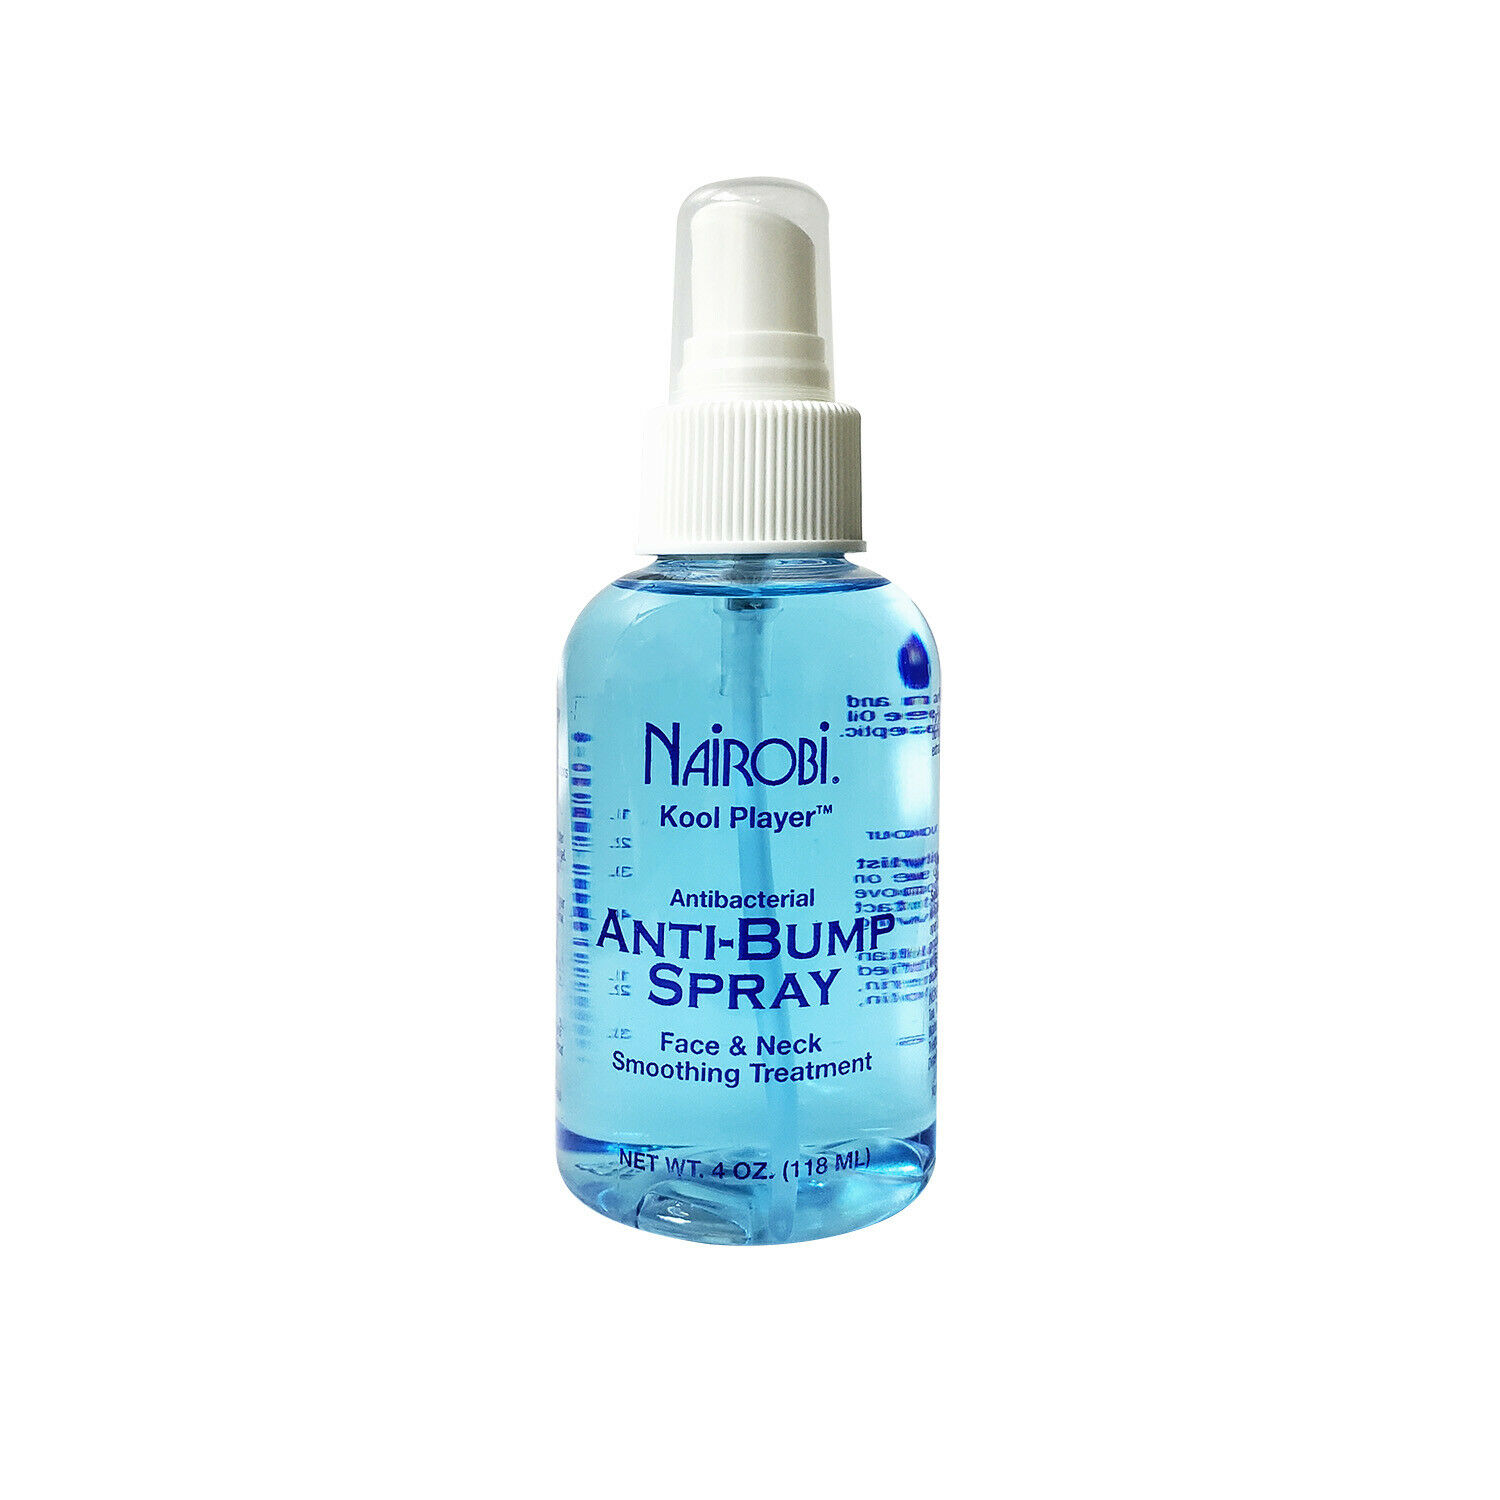 Nairobi Kool Player Anti-Bump Spray 4 Oz. – Free Shipping !! Health & Beauty